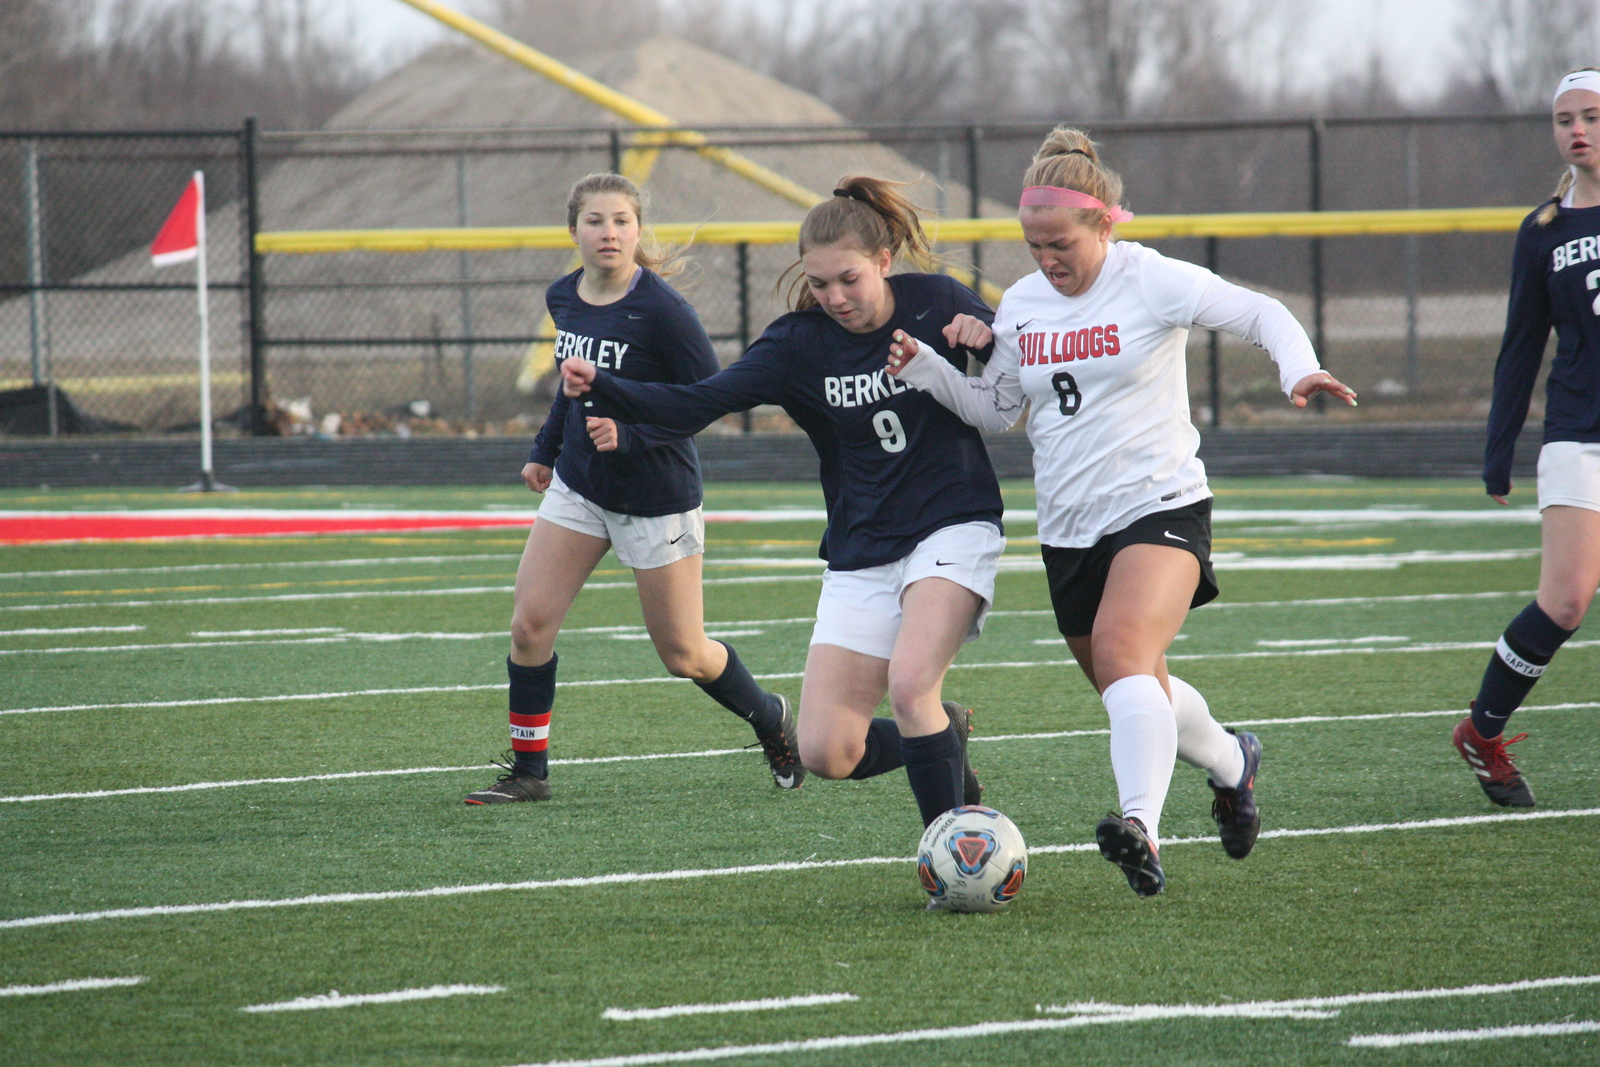 Romeo's Macy Manchester and Berkley's Karsen Murray battle for possession of the ball during their non-league match on April 10 at Romeo. (Photo gallery by Kevin Lozon)